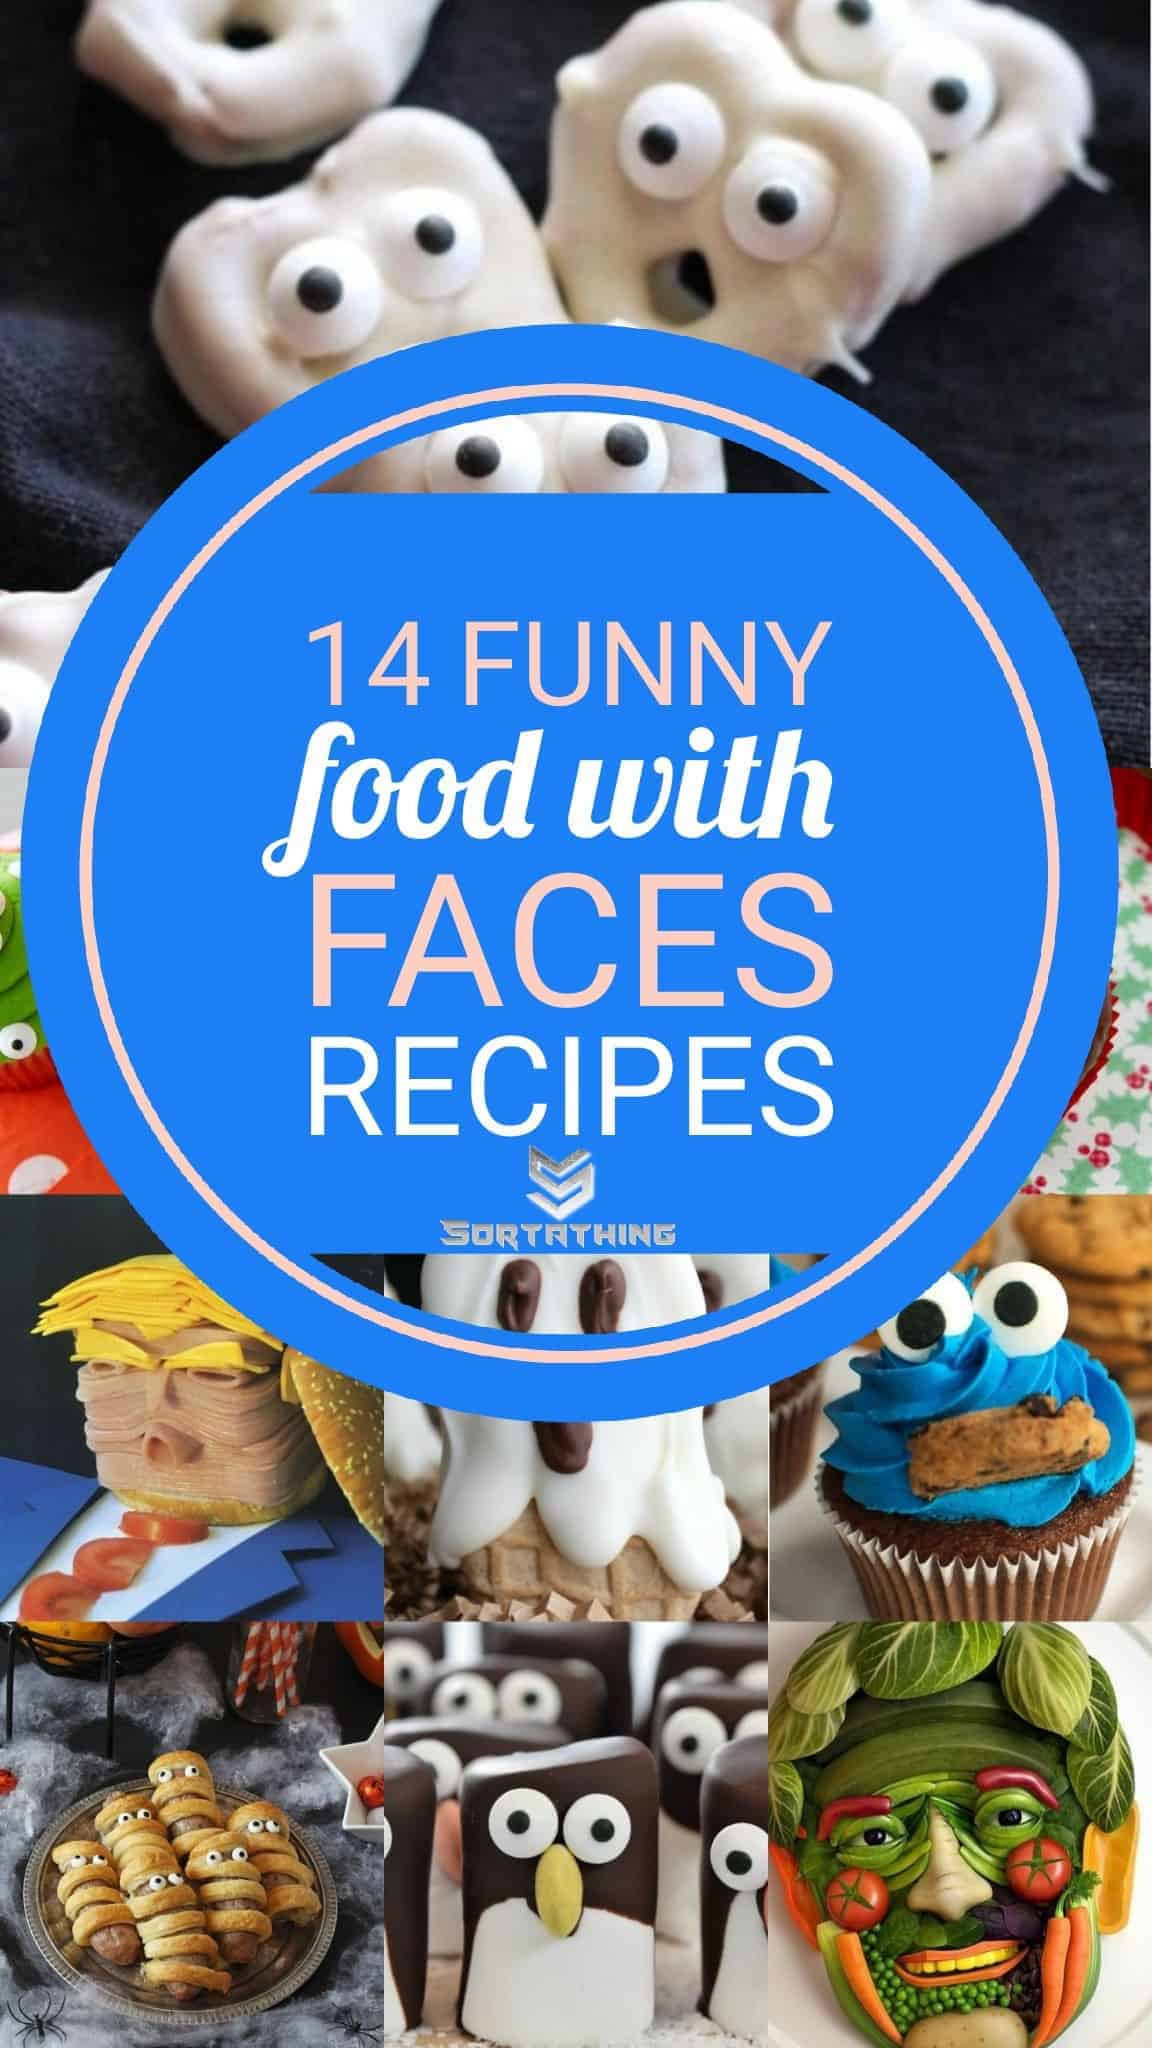 14 Funny Food with Faces Recipes